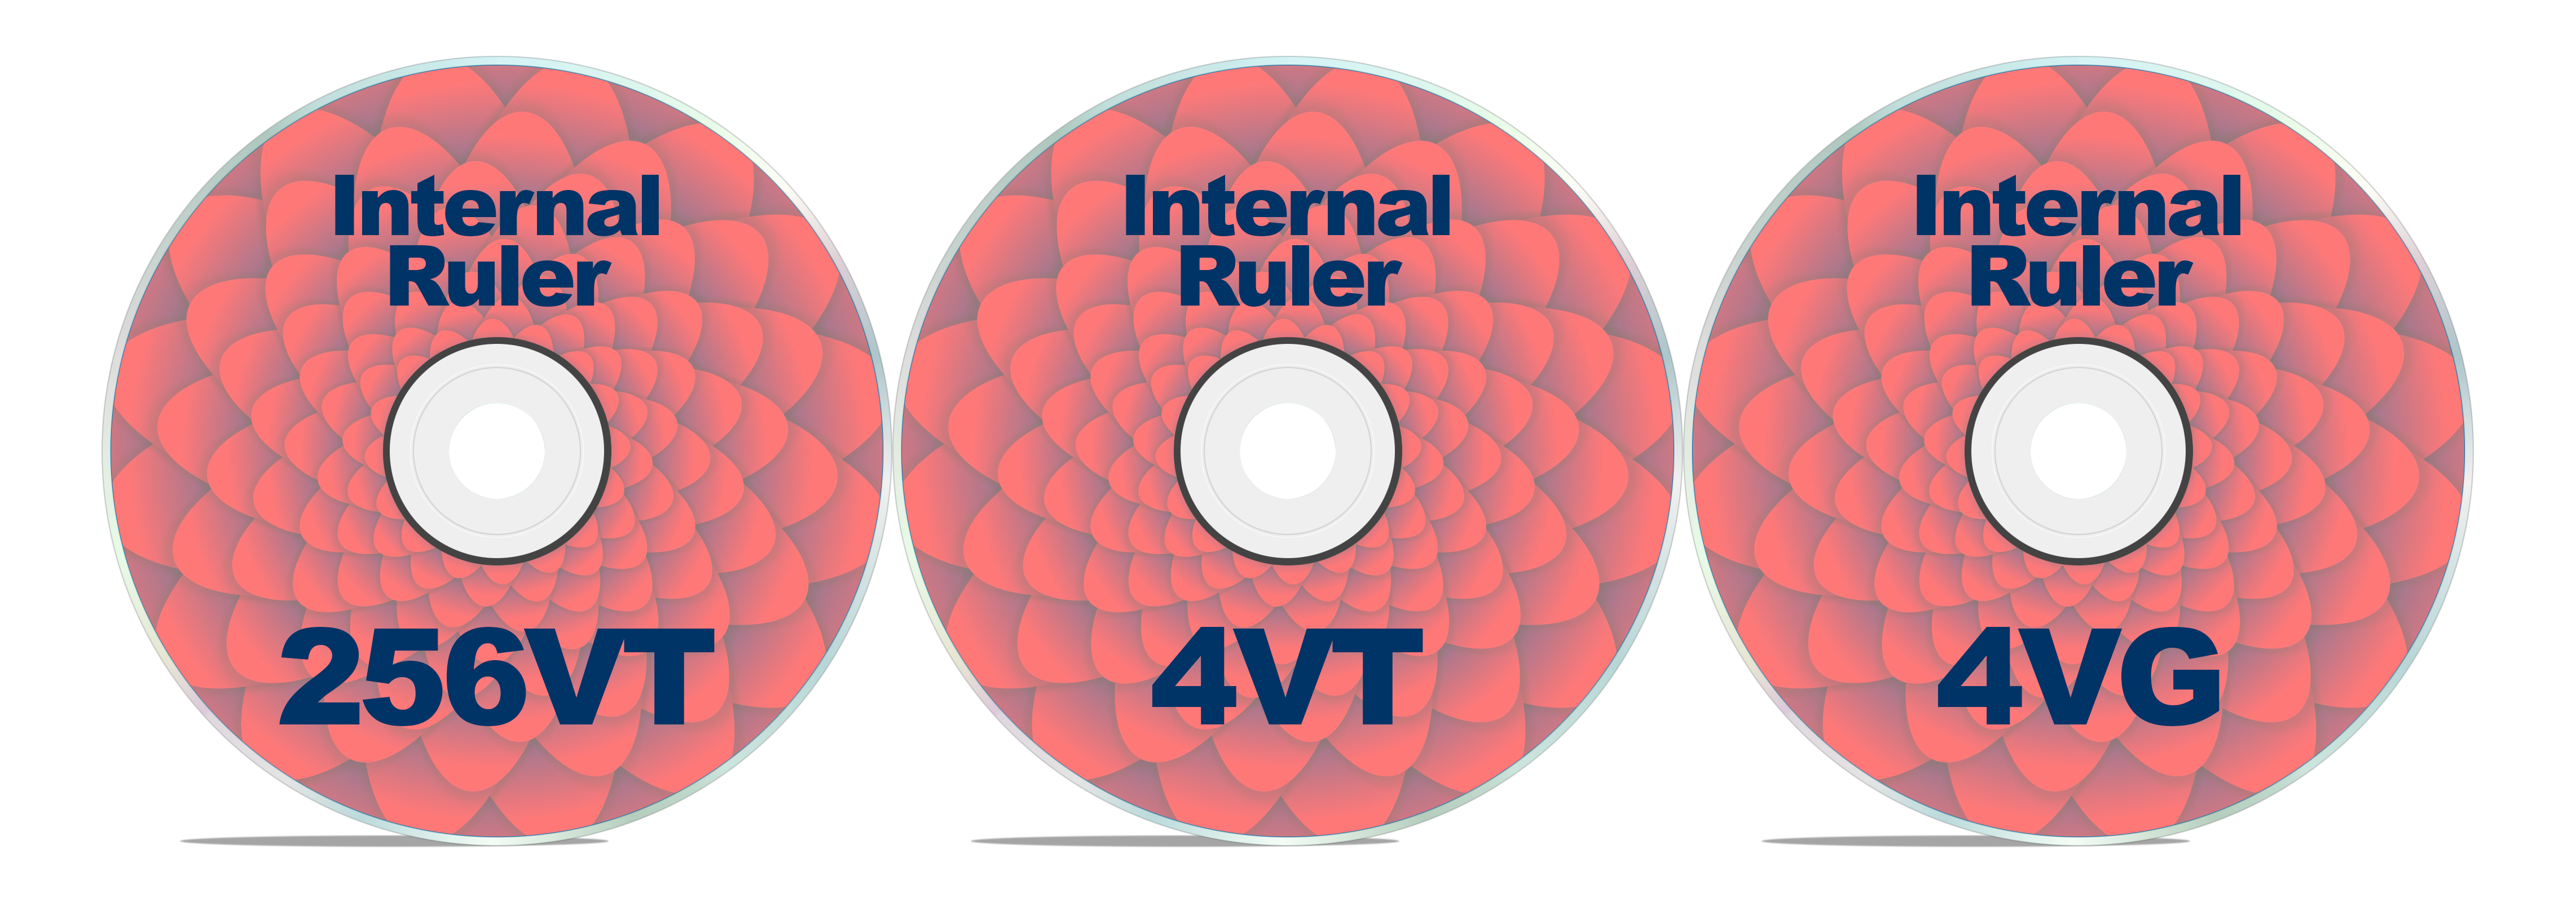 Internal Ruler